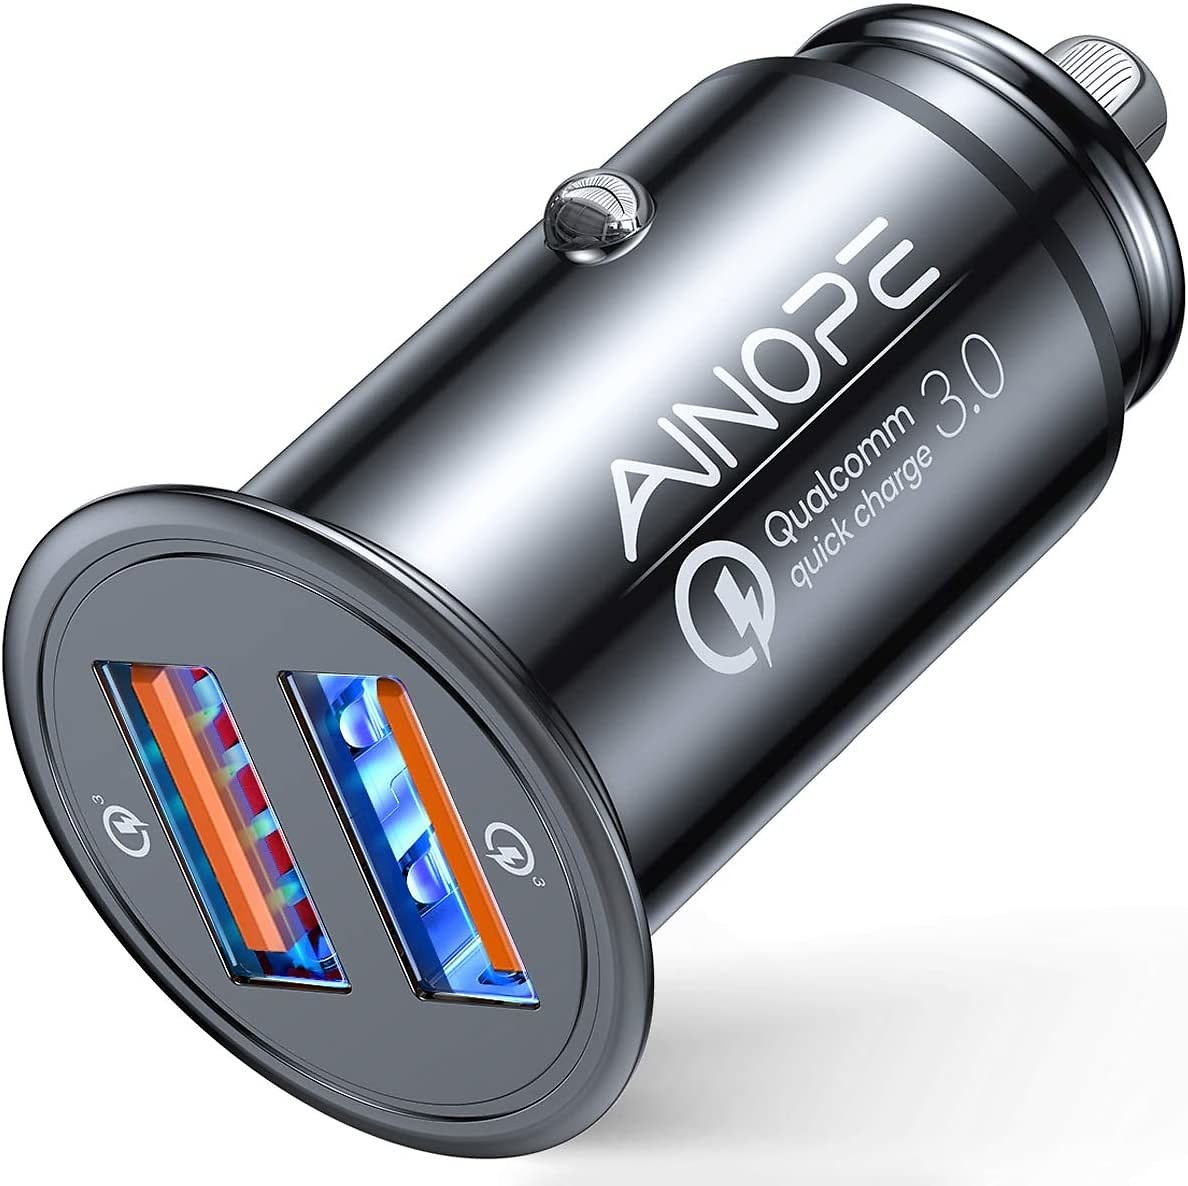 AINOPE USB Car Charger, [Dual QC3.0 Port] 36W/6A [All Metal] Fast Car Charger Adapter Mini Cigarette Lighter Usb Charger Quick Charge Compatible with IPhone 11/11 Pro/XR/X/XS, Note 9/Galaxy S10/S9/S8